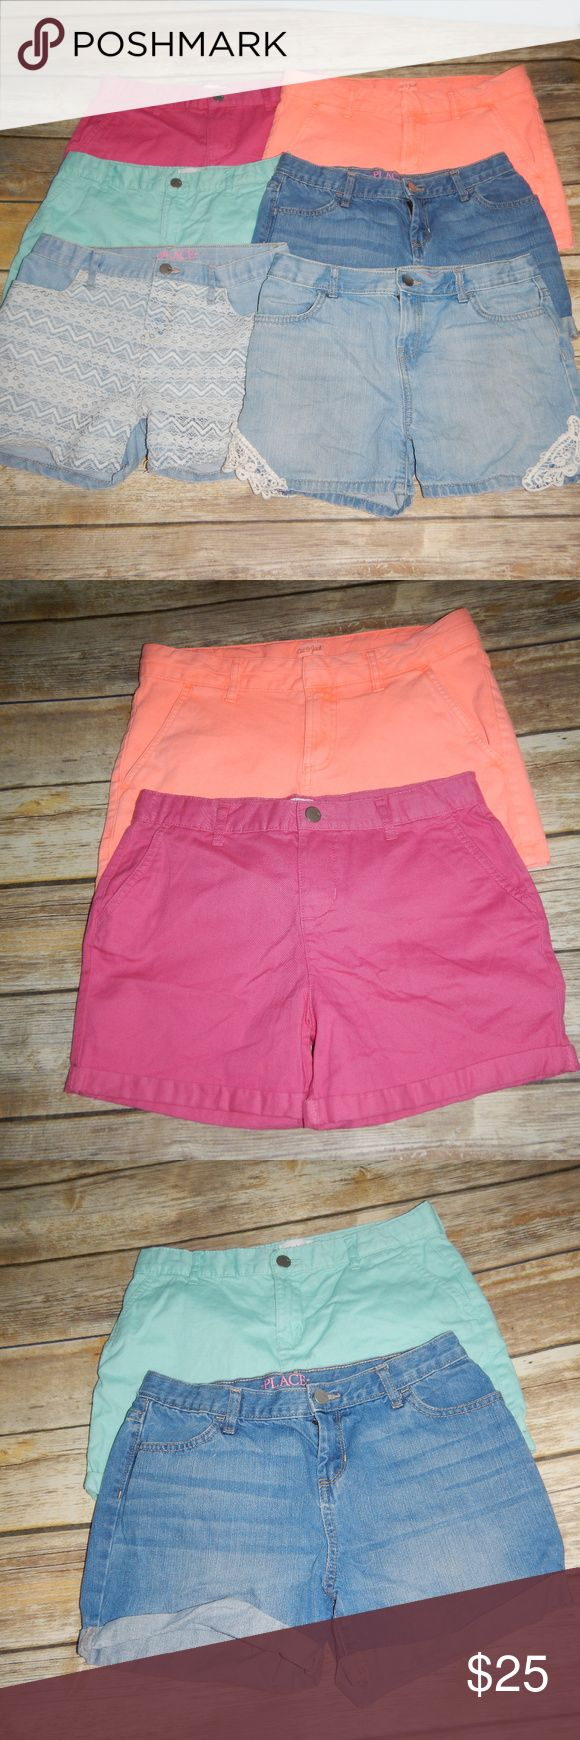 Girls Size 14 Lot 6 Shorts Children Place Cat Jack Girls Size 14 Lot 6 Shorts Children Place Cat Jack 1 Place denim jean shorts with lace on corners 2 Place denim jean shorts with front lace  3 Place aqua shorts 4 Place solid denim jean shorts 5 Place pink shorts 6 Cat & Jack neon orange shorts The Children's Place Bottoms Shorts